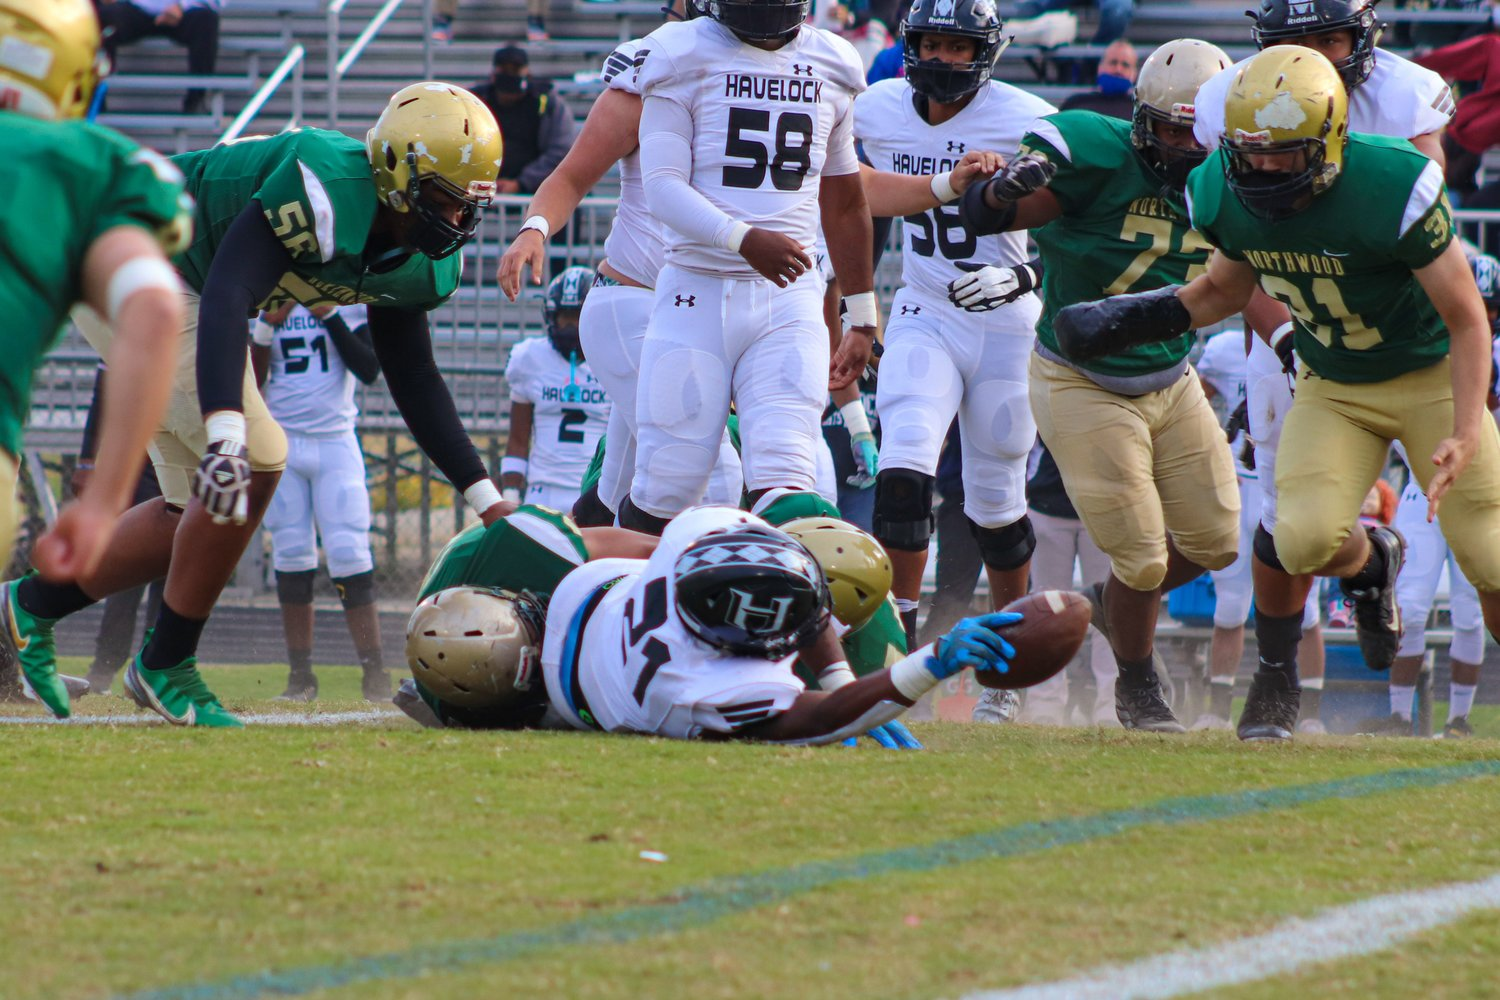 Havelock senior running back Kamarro Edmonds (21) stretches for a first down as he's brought to the ground by a pair of Northwood defenders in his team's 32-7 win over the Chargers last Friday. Edmonds is a 2021 commit to North Carolina.